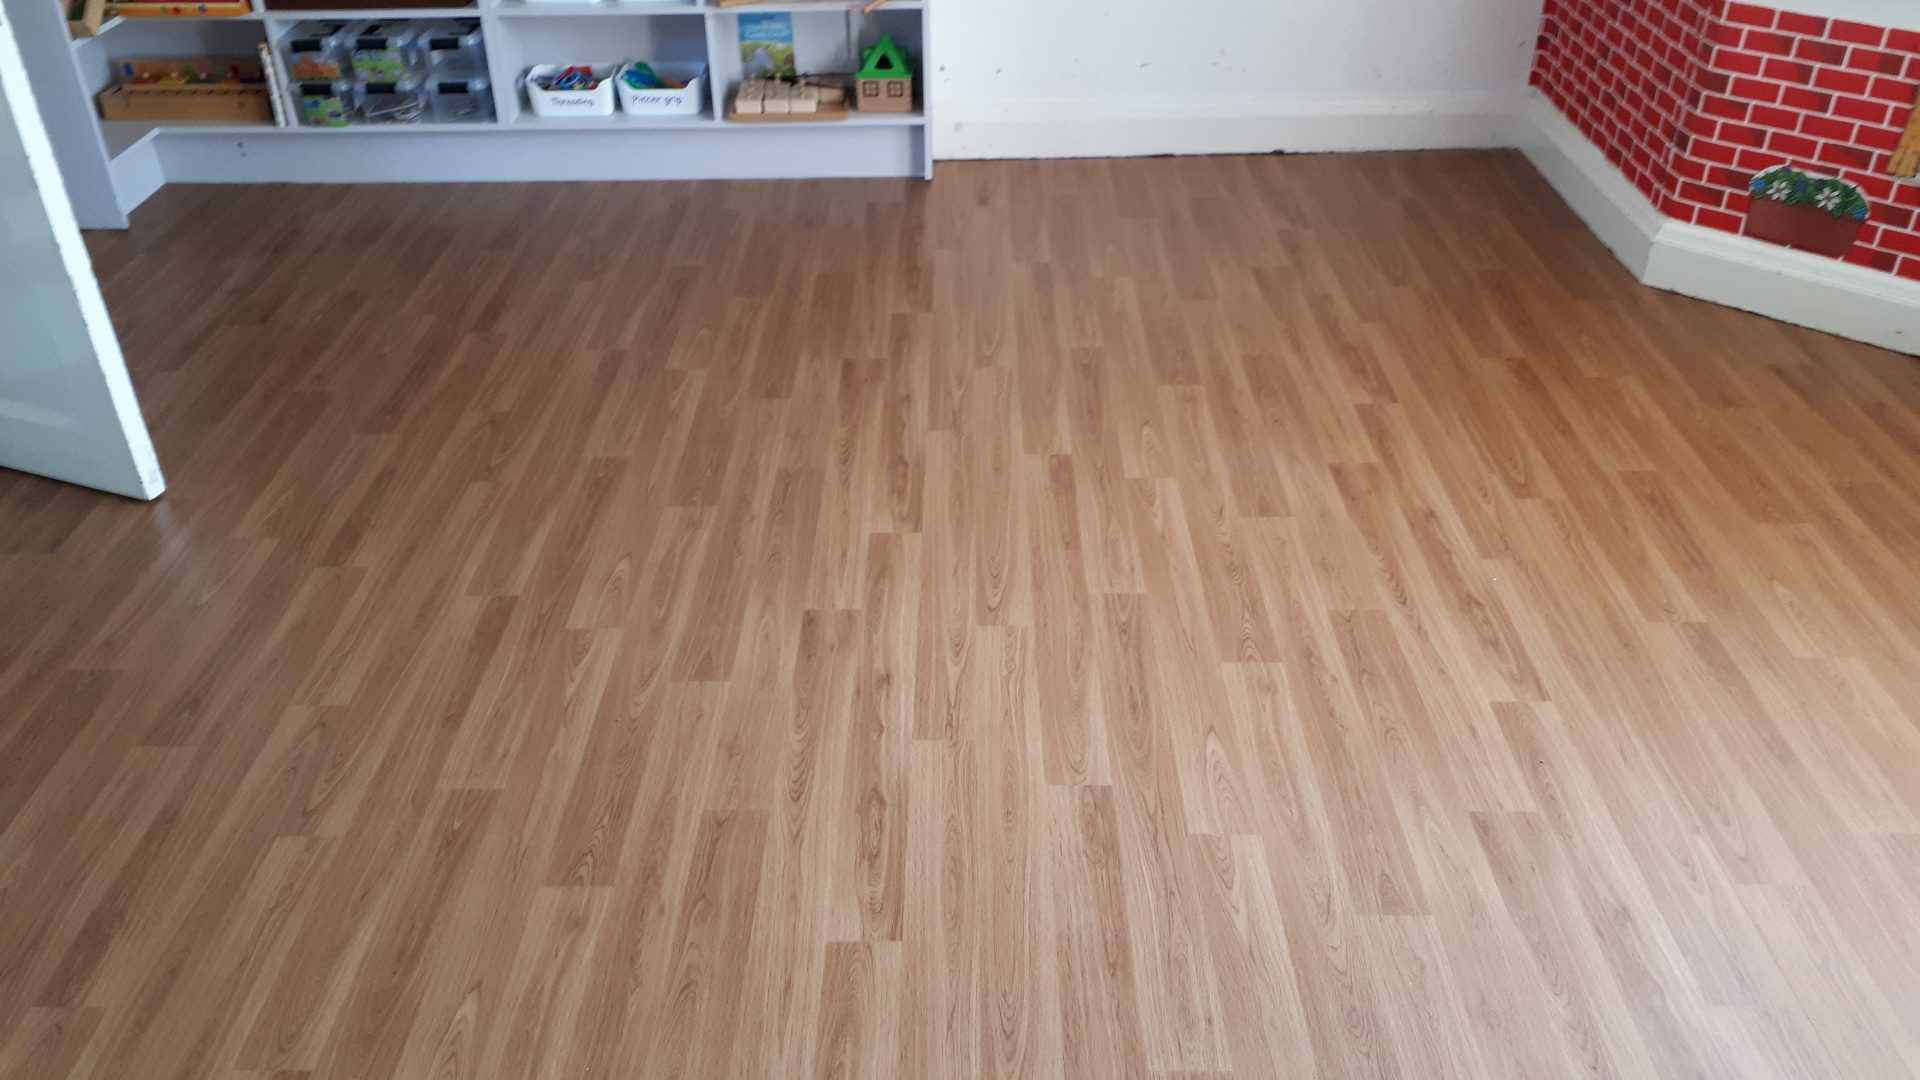 Redhill And Reigate Flooring Local Carpet And Flooring Shop